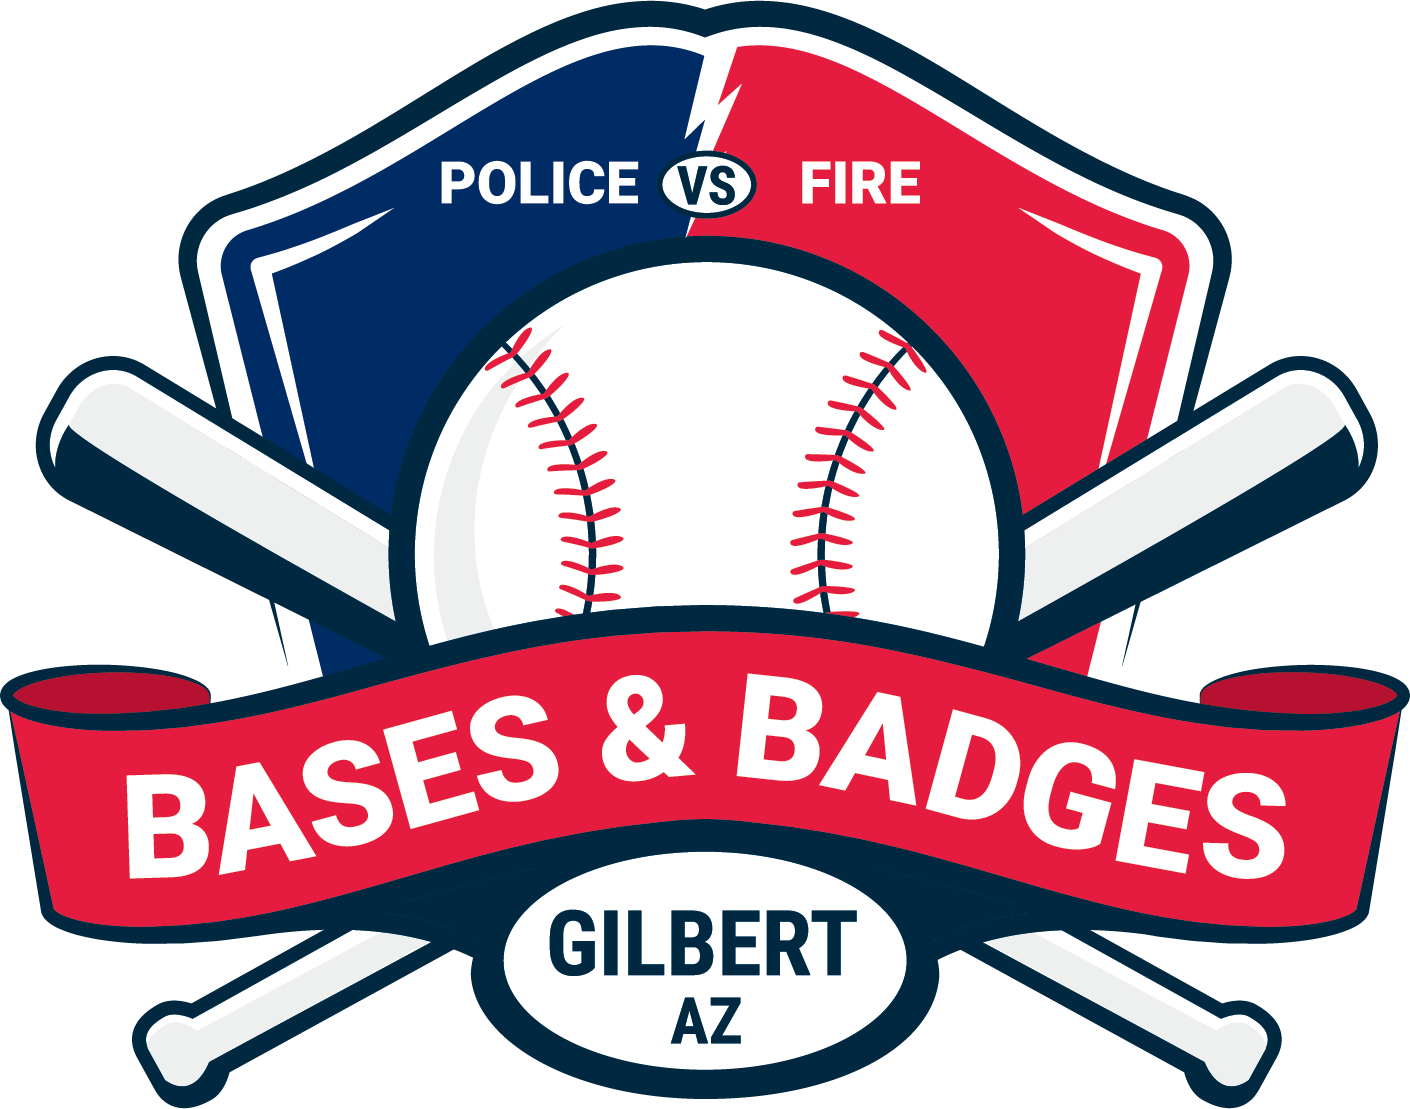 Baseball themed logo for the Bases & Badges event